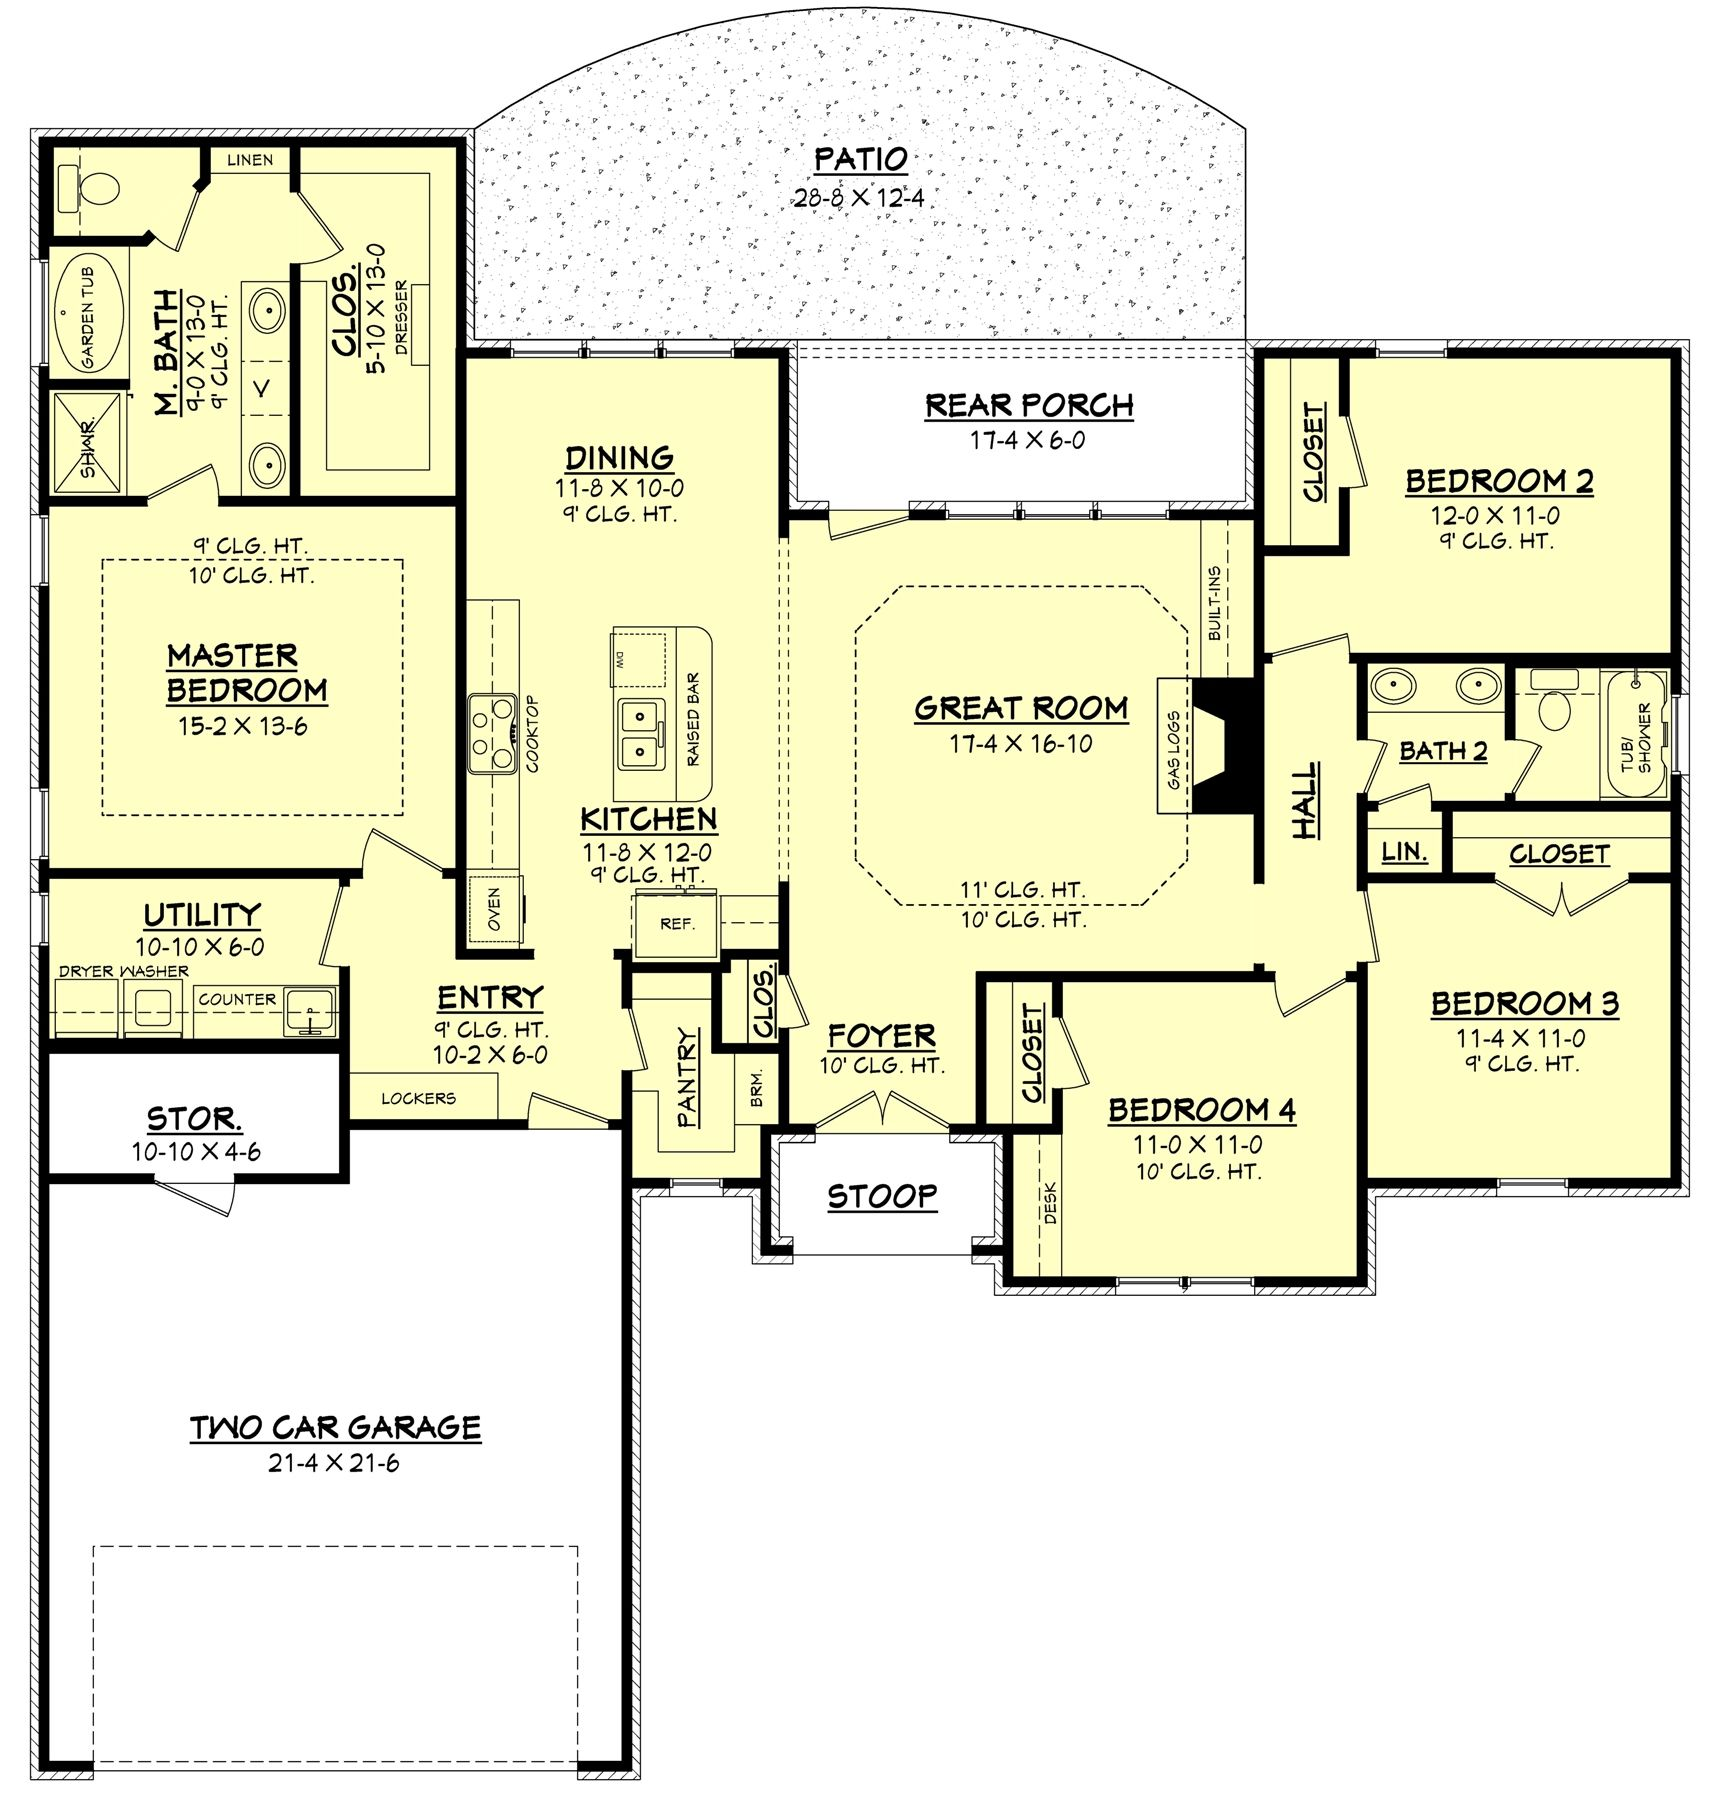 Best 25 ranch style floor plans ideas on pinterest ranch house best 25 ranch style floor plans ideas on pinterest ranch house plans ranch floor plans and ranch style homes jameslax Images